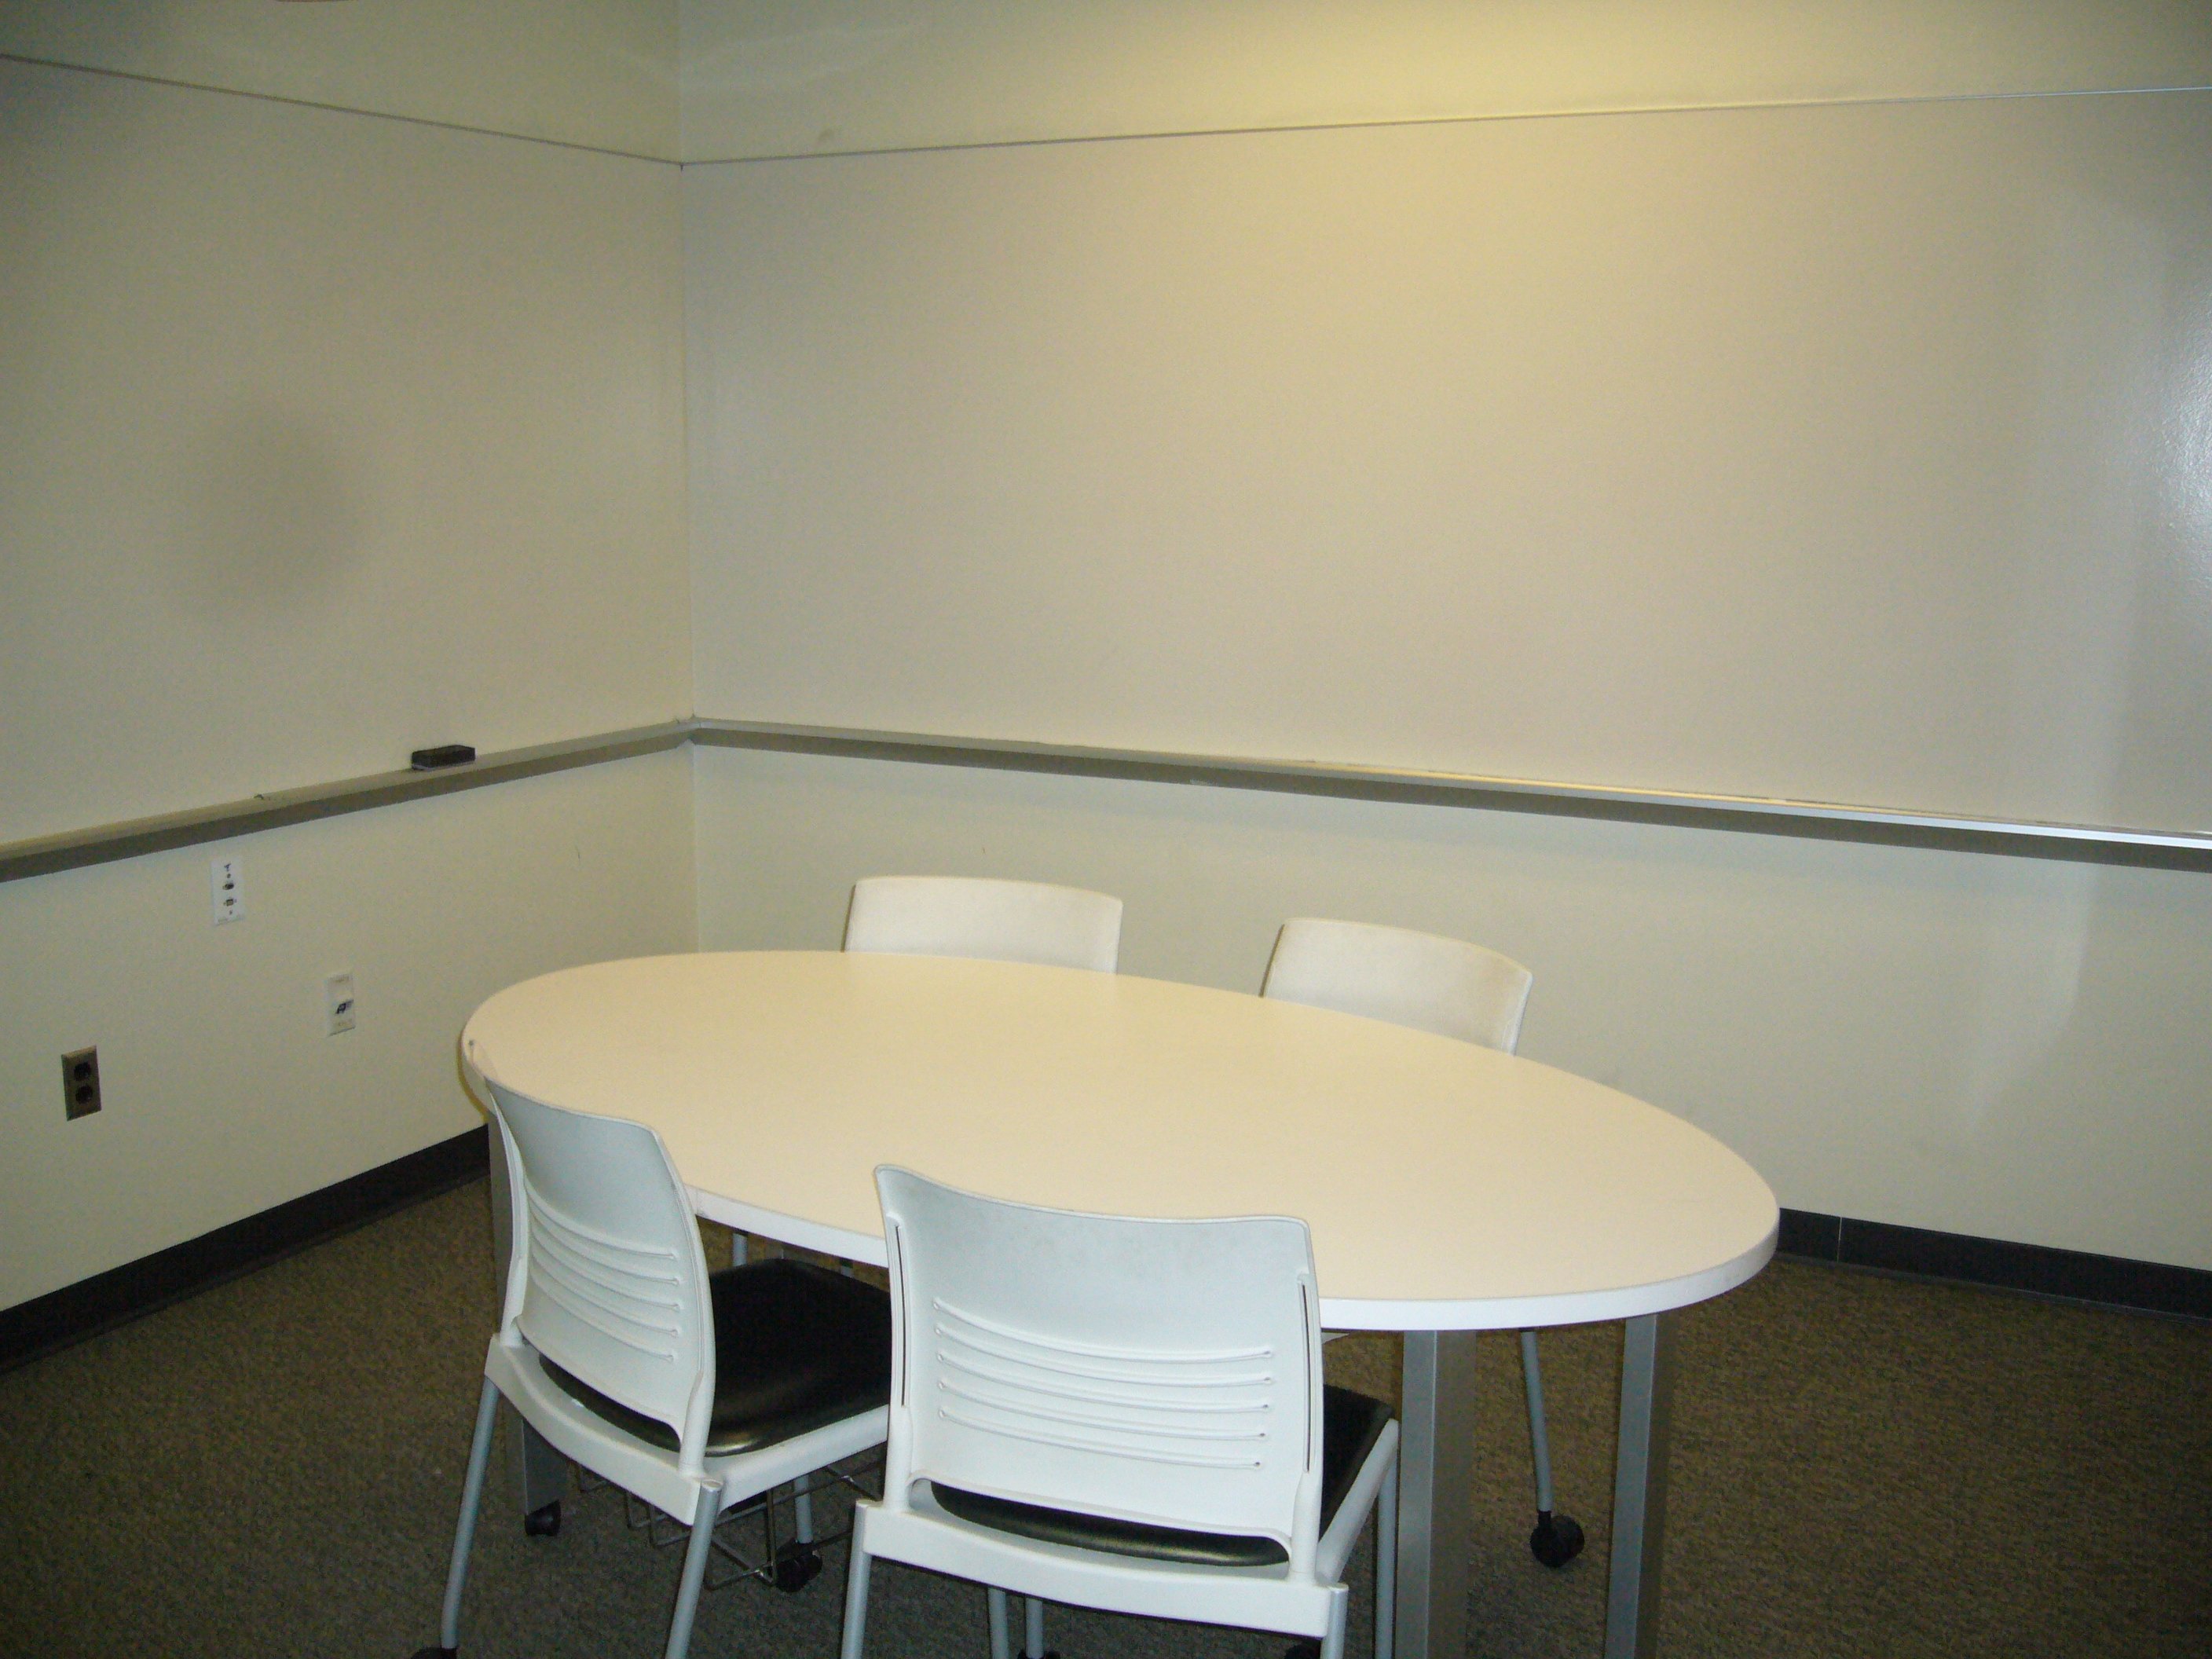 Bierce Library Study Room 156C